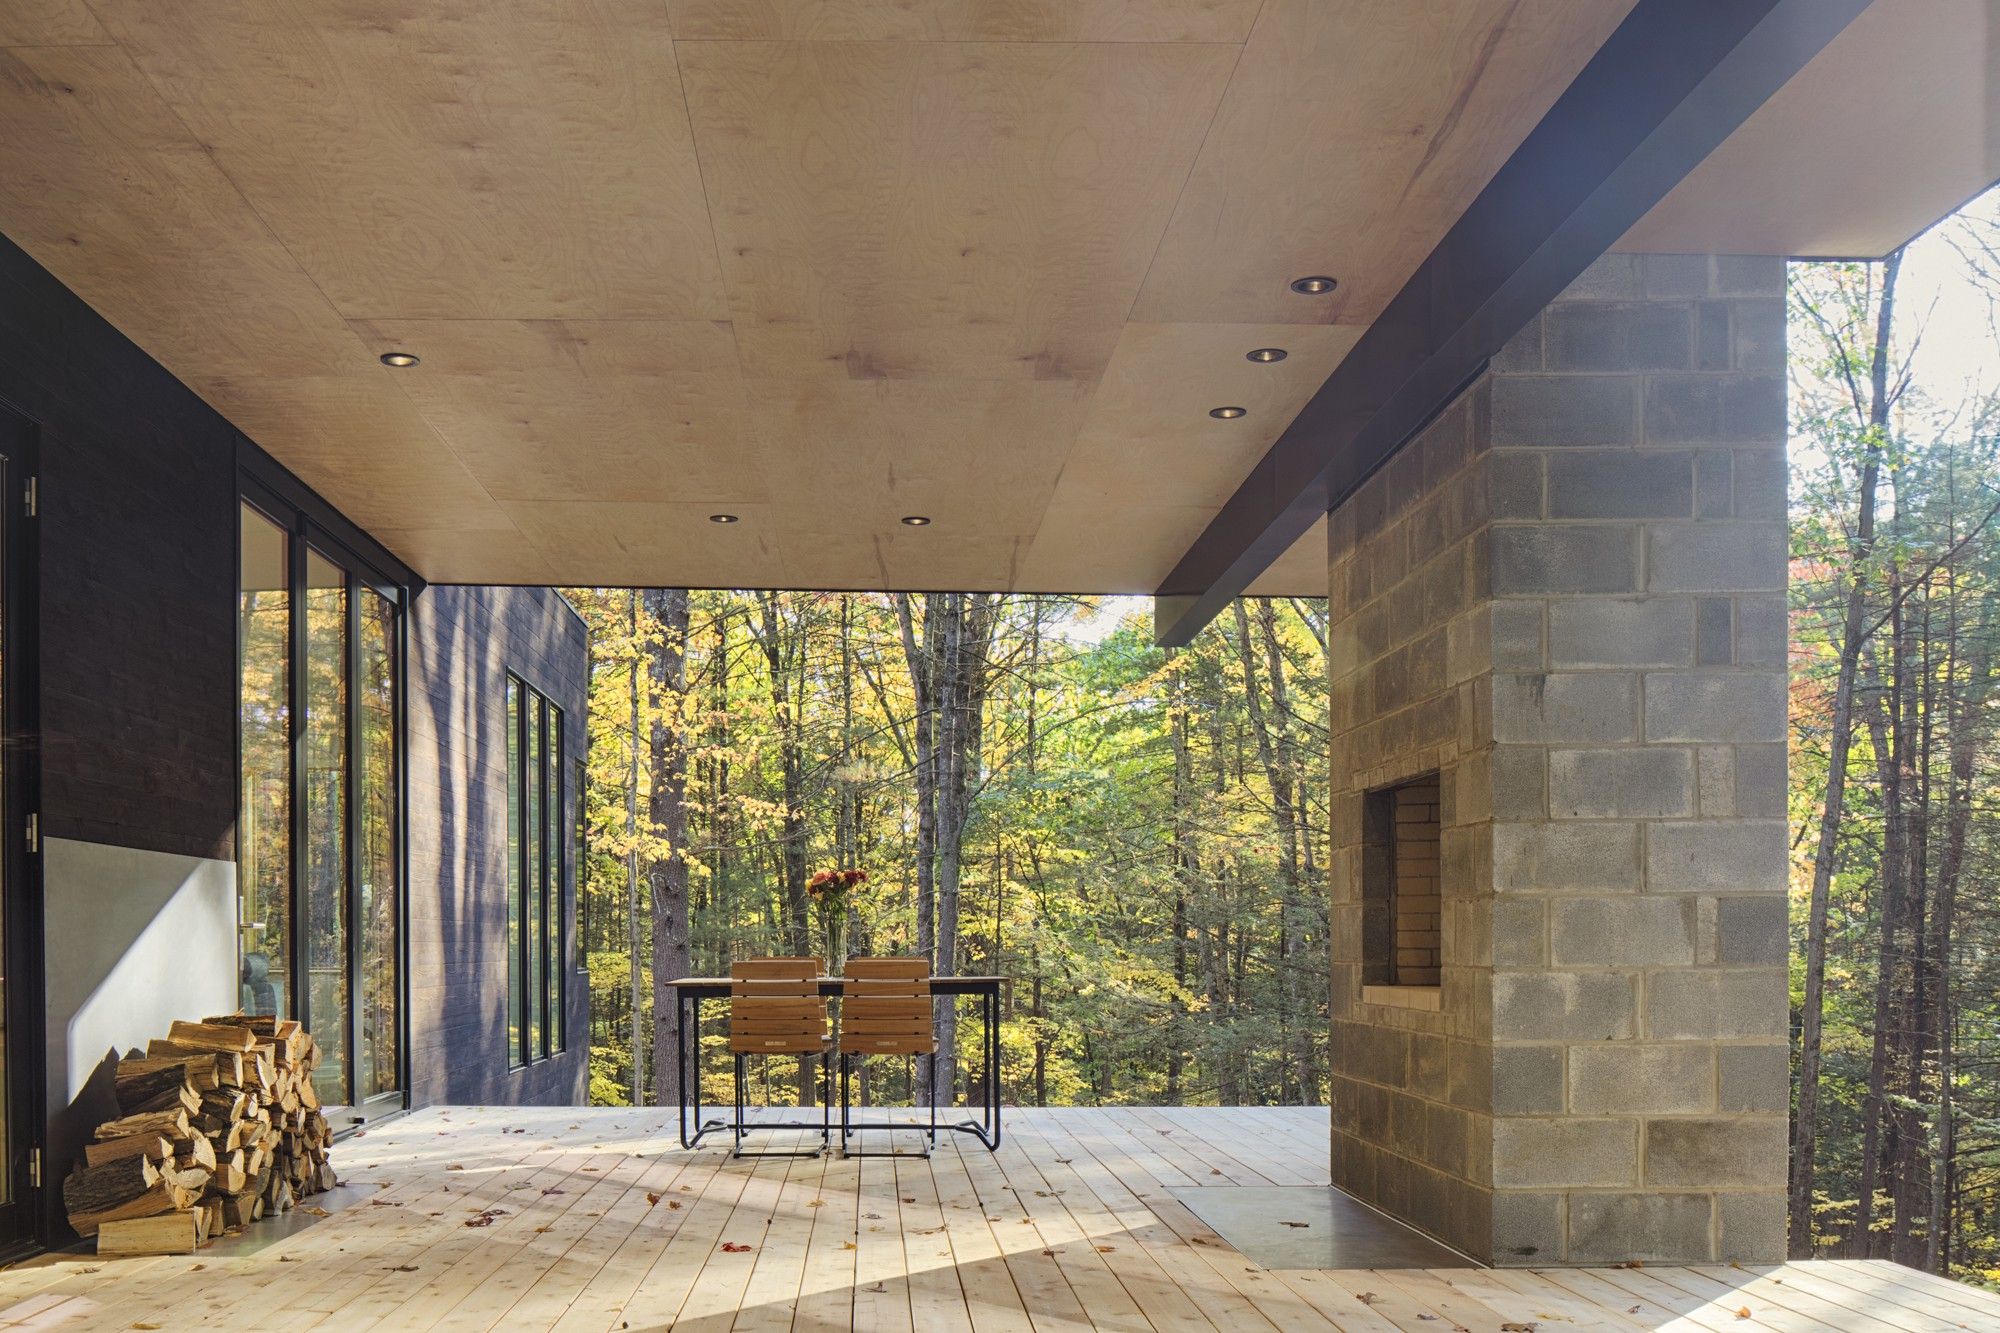 Contemporary Design Features Outside Space Hv Contemporaryhomes - Contemporary-house-architecture-to-get-surroundings-of-nature